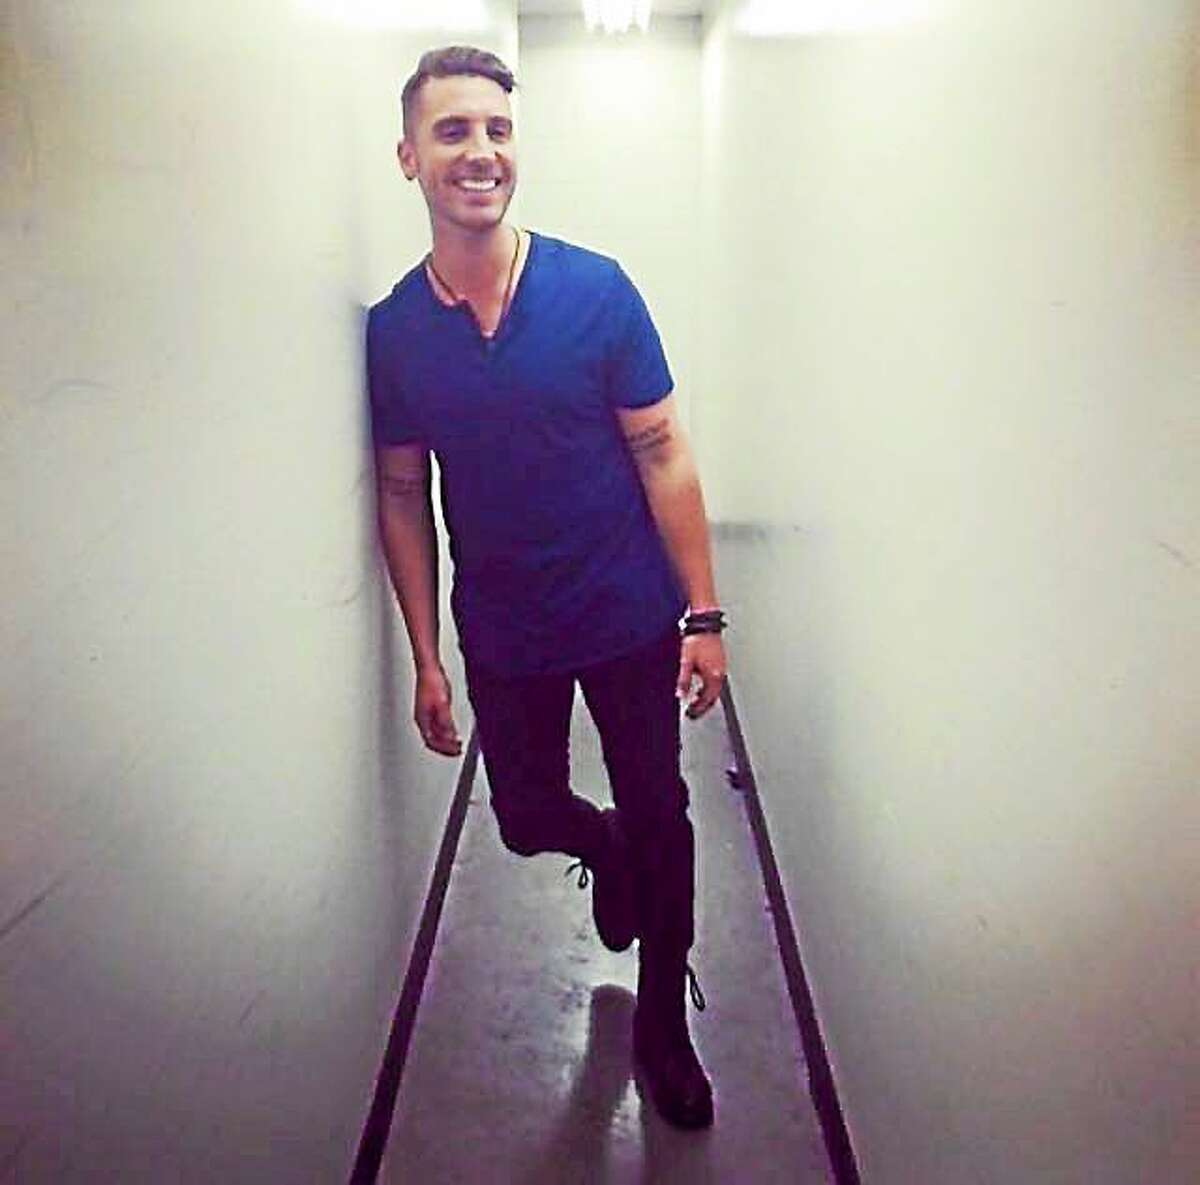 Nick in the hallway. Photo from his dad's Facebook page.